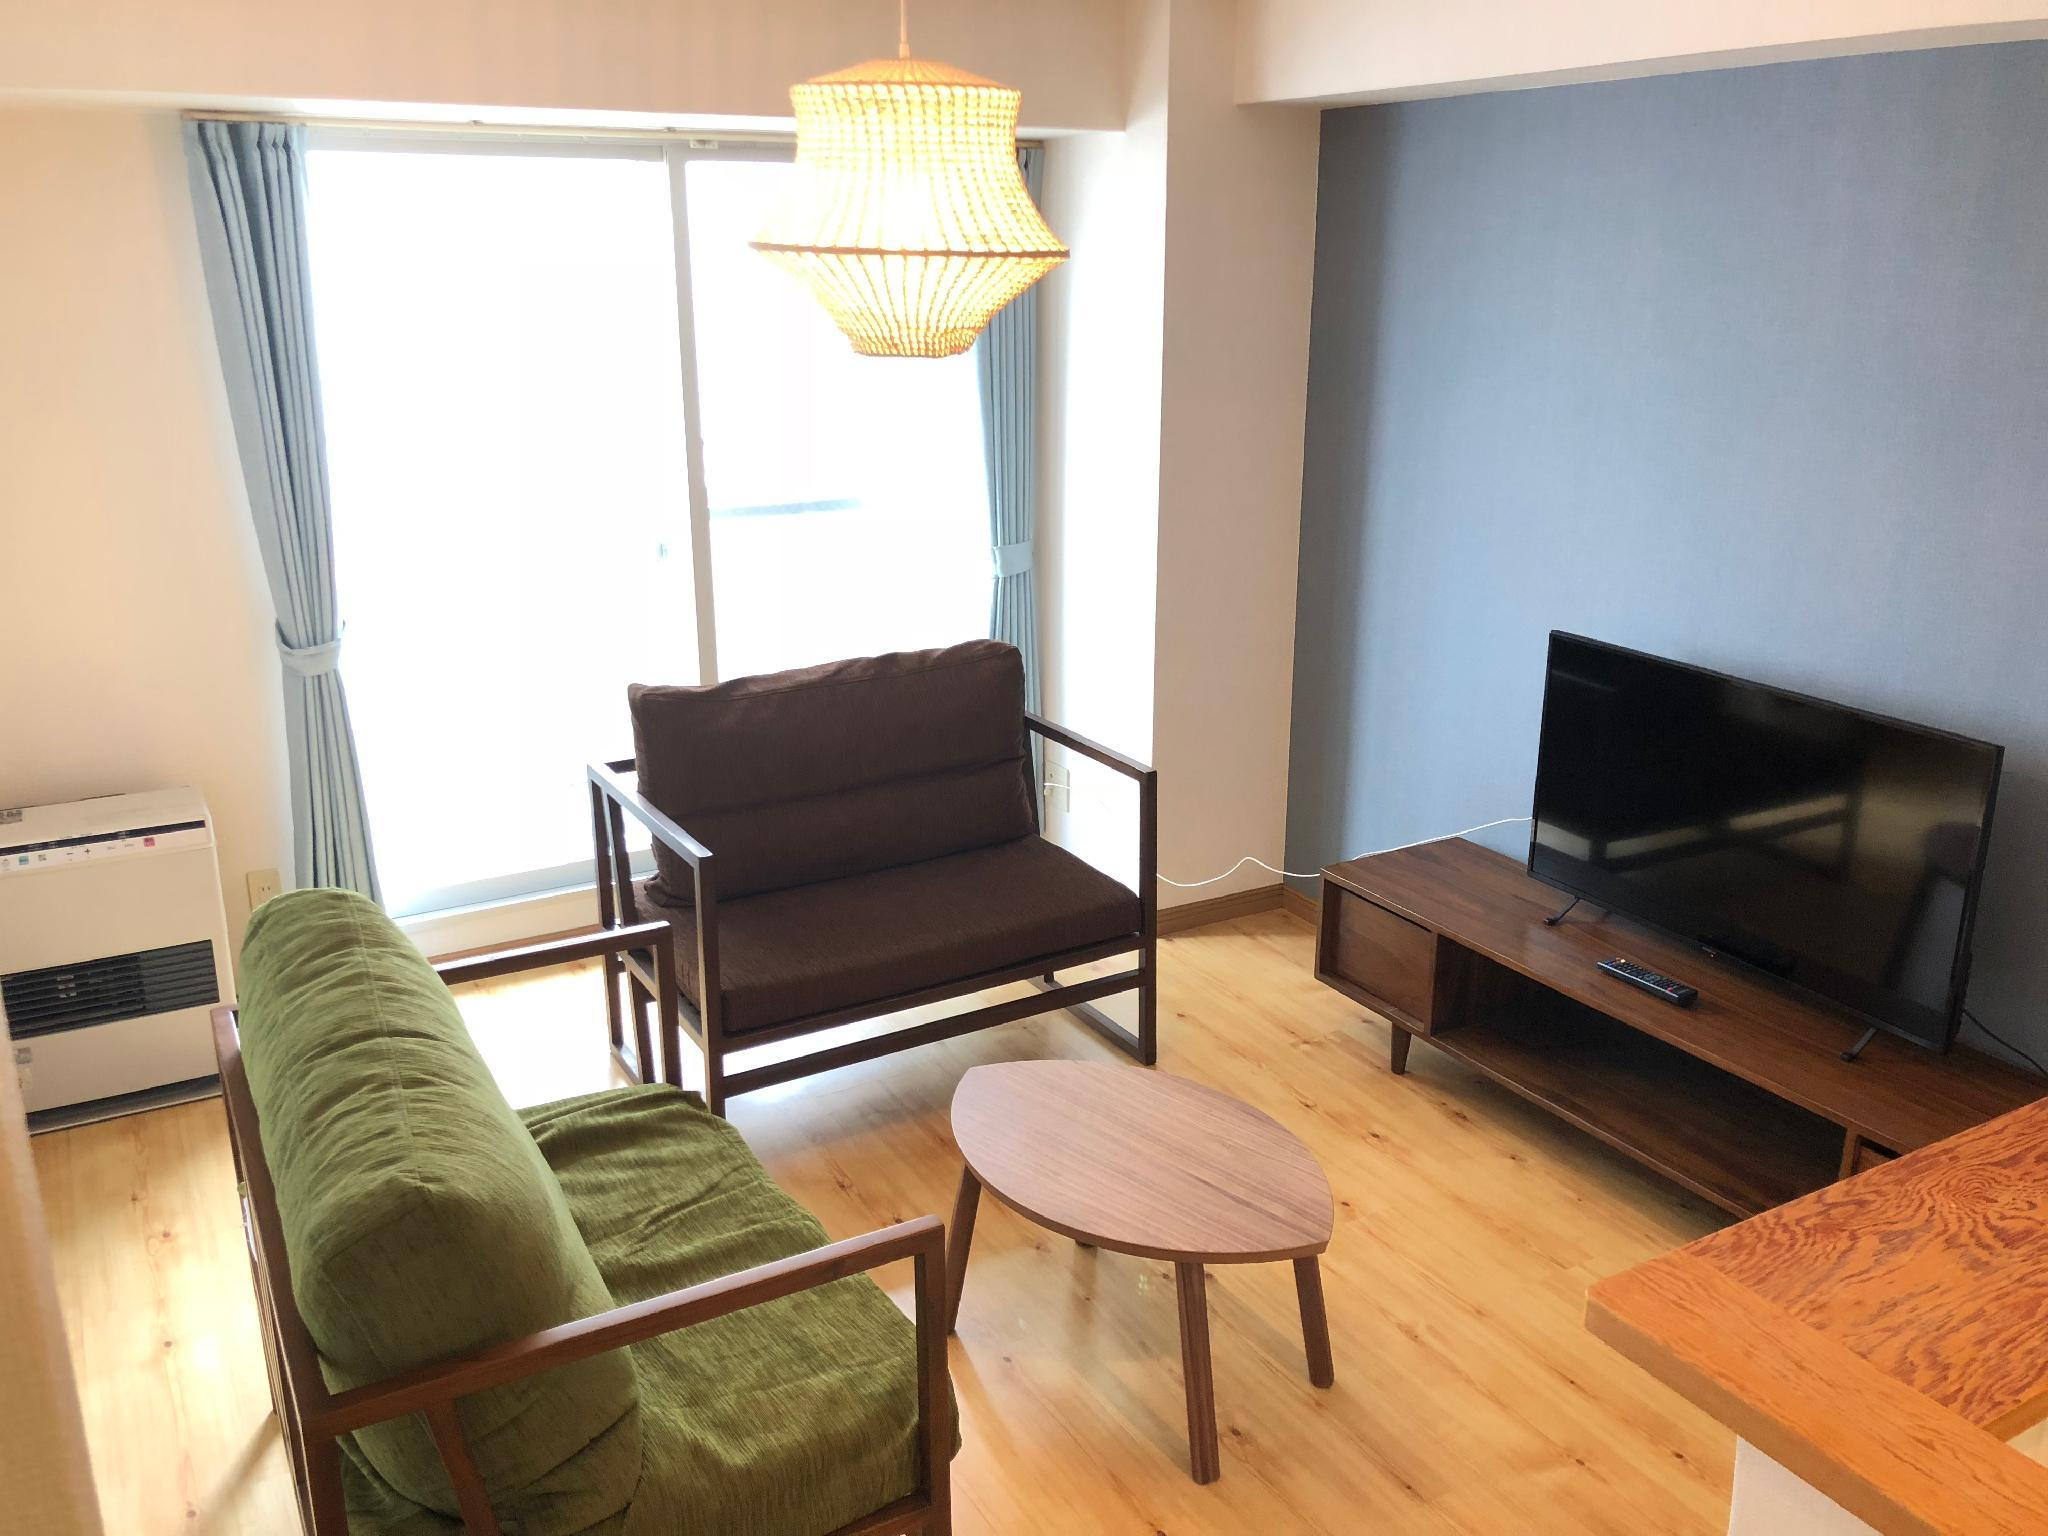 1 Bedroom Apartment In Sapporo 705